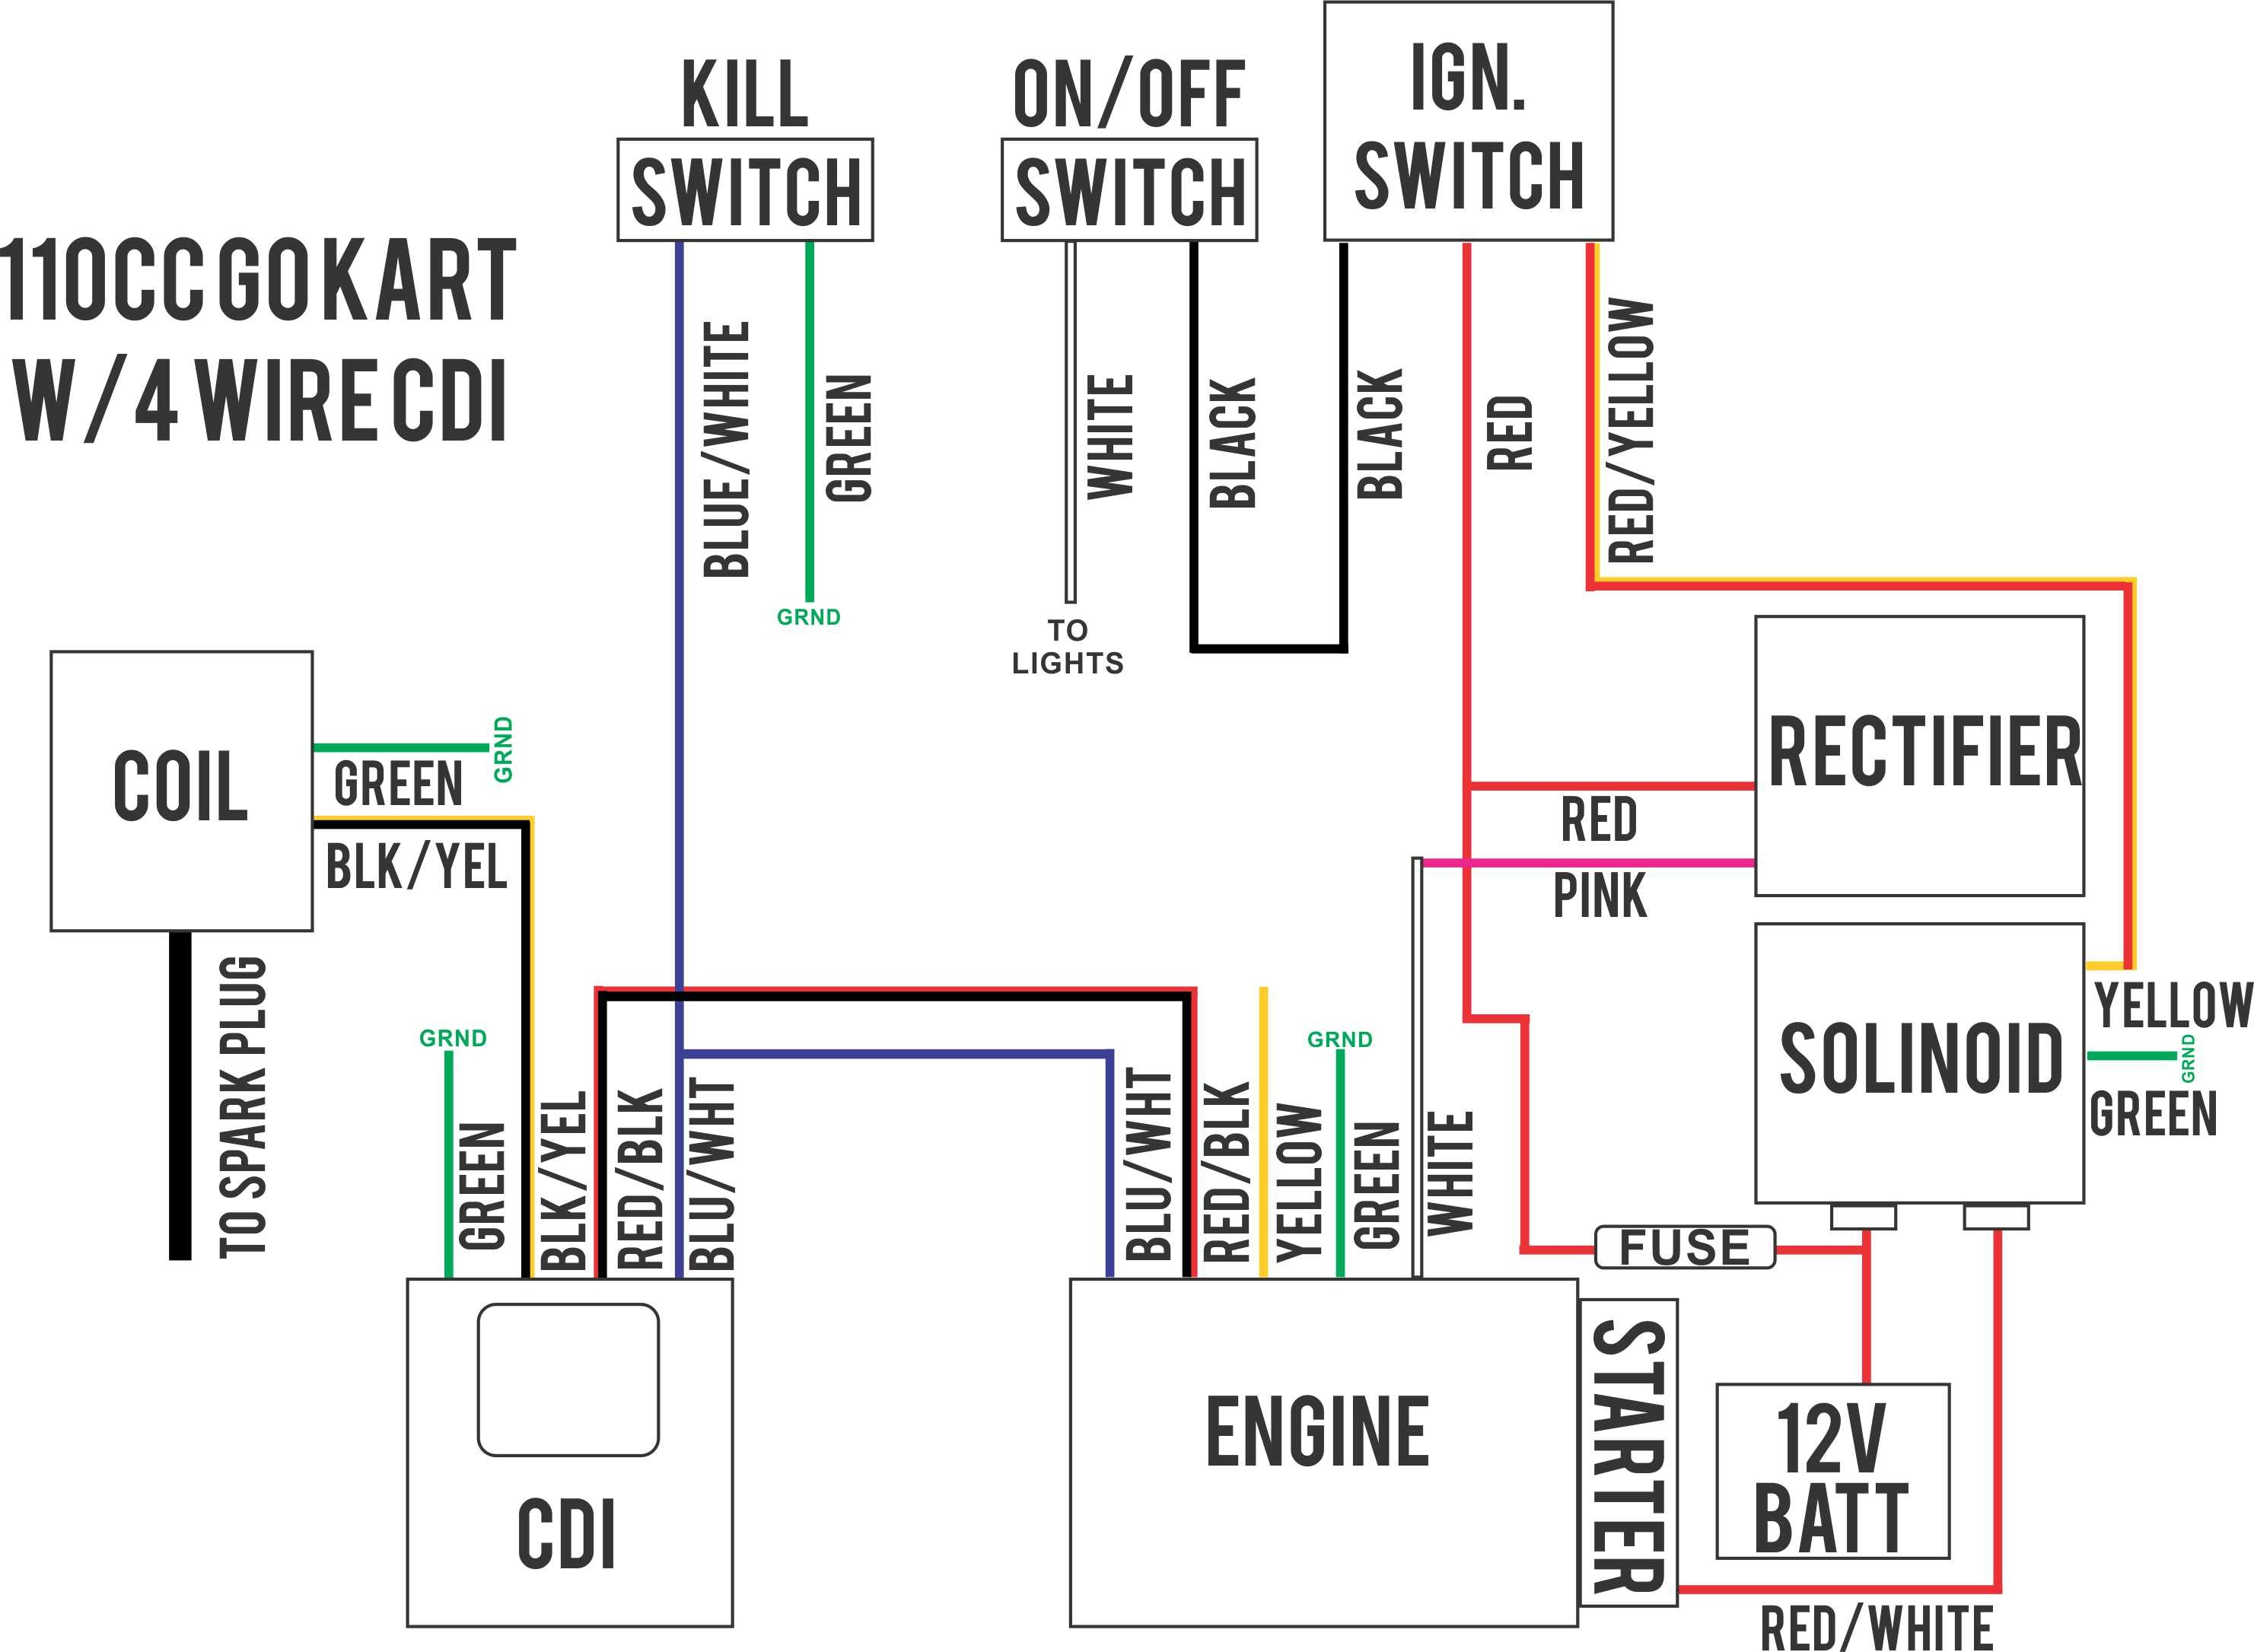 Bike motor wiring diagram motor engine diagram craftsman table saw craftsman table diagram of a 2 stroke engine my wiring diagram on motor engine diagram craftsman greentooth Choice Image